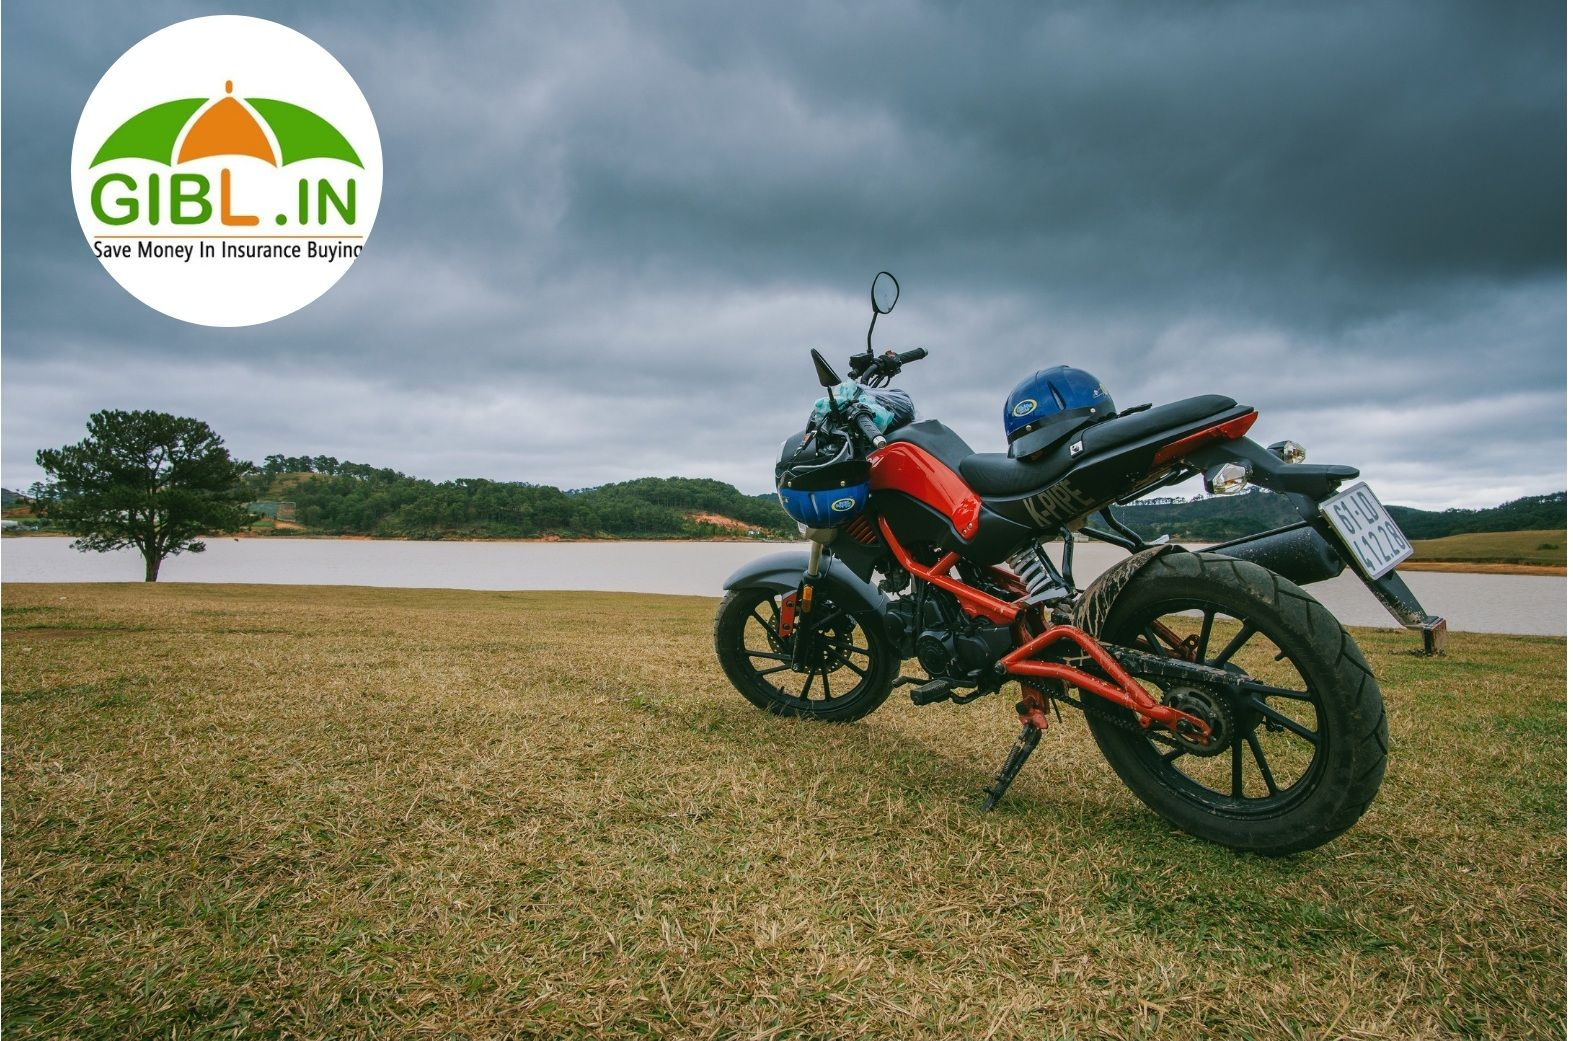 TwoWheeler premium at an affordable price GIBL.IN